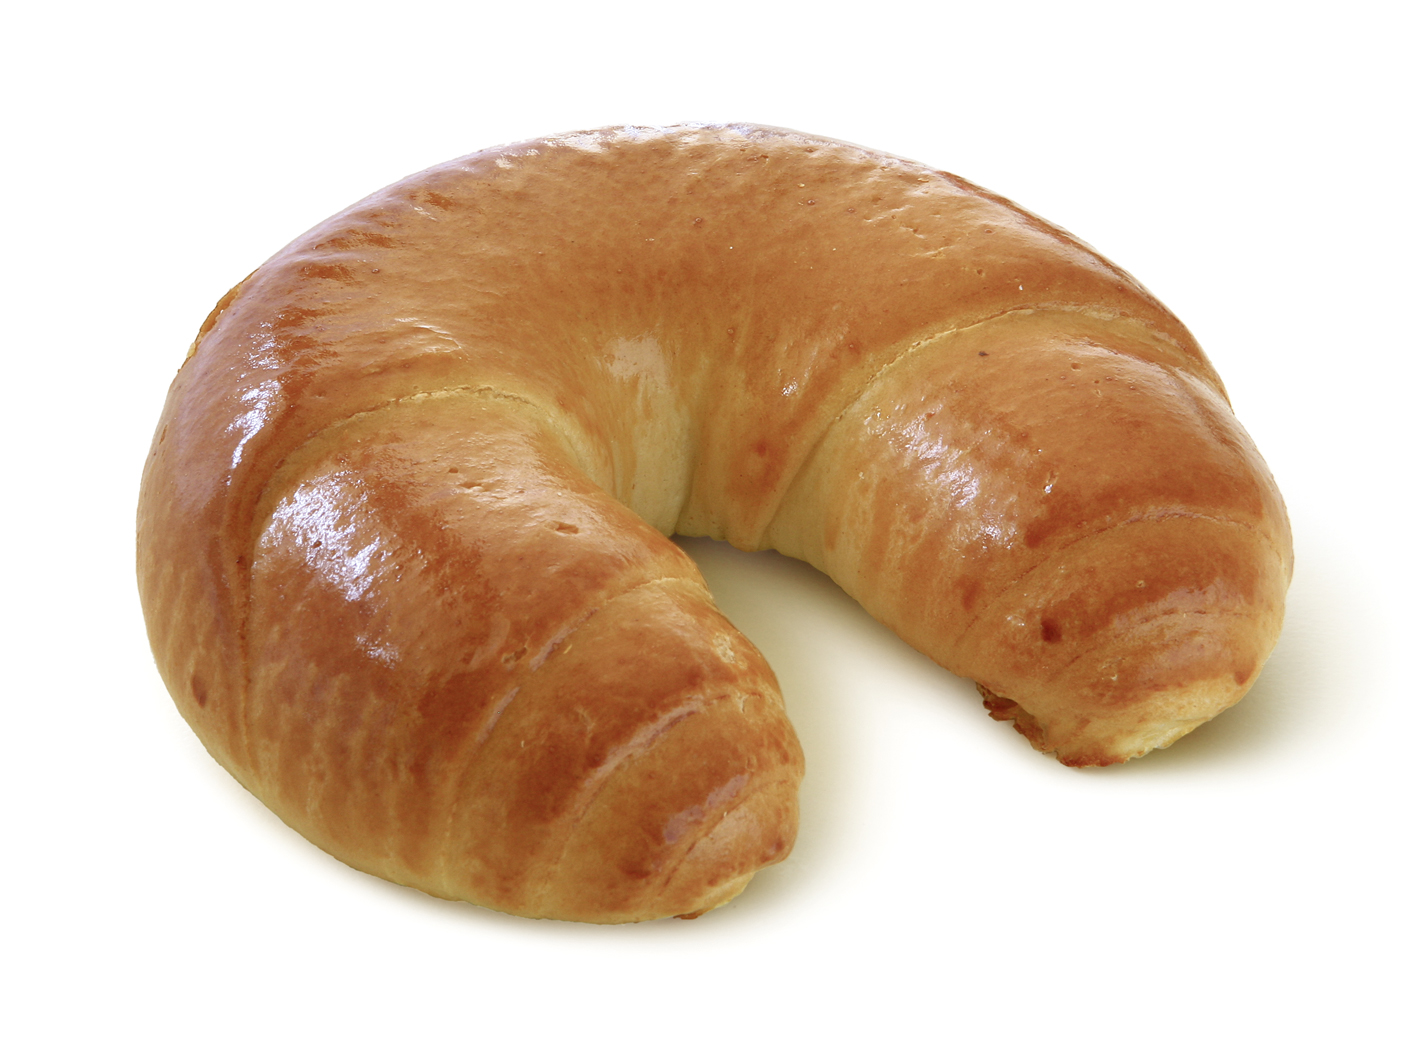 Milk Croissant - With wholemilk, curd cheese and butter in typical wrapped shape. Thaw only.